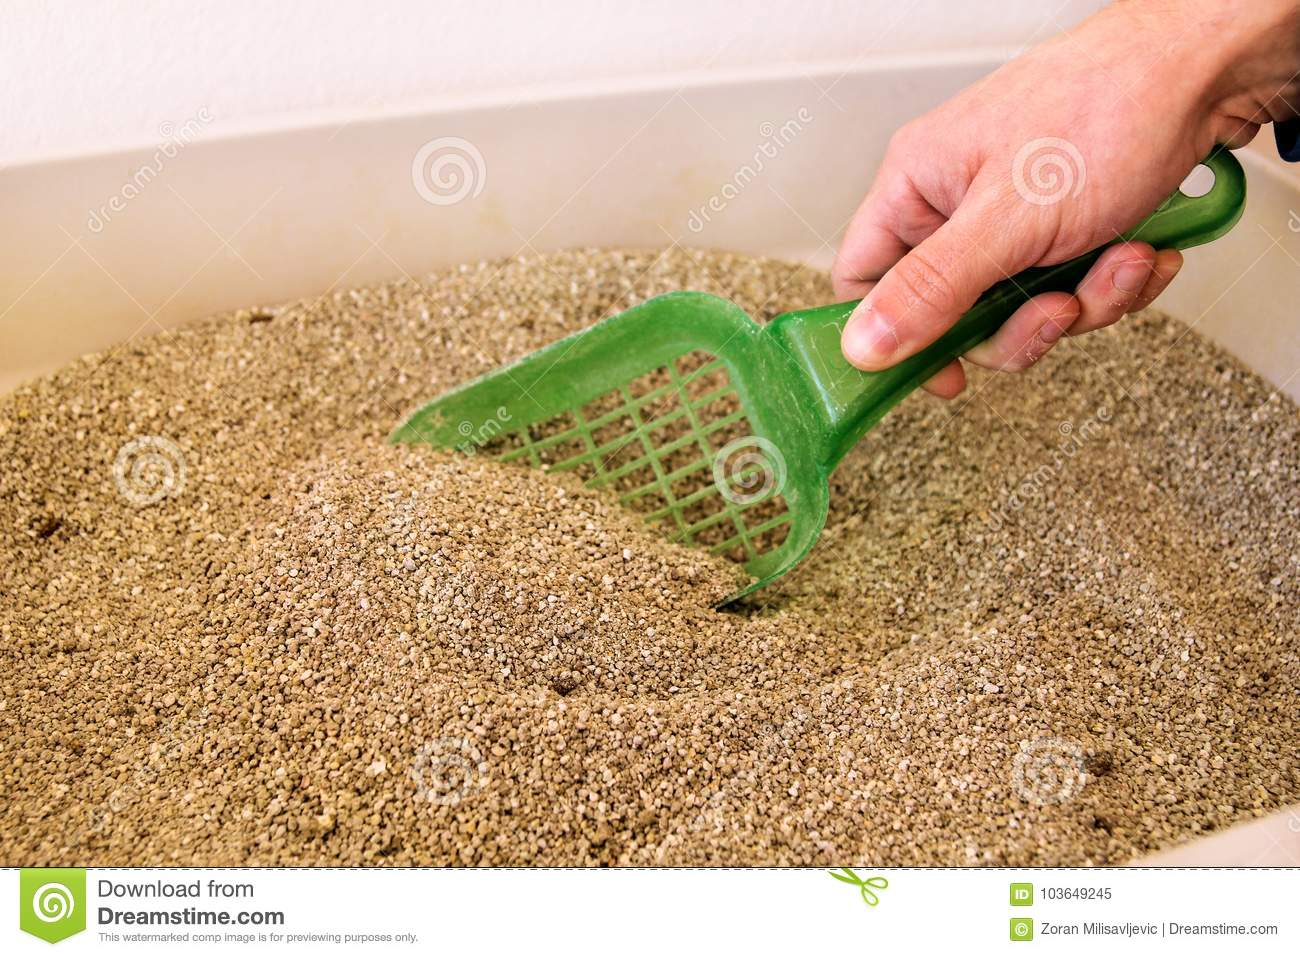 Cleaning cat litter box